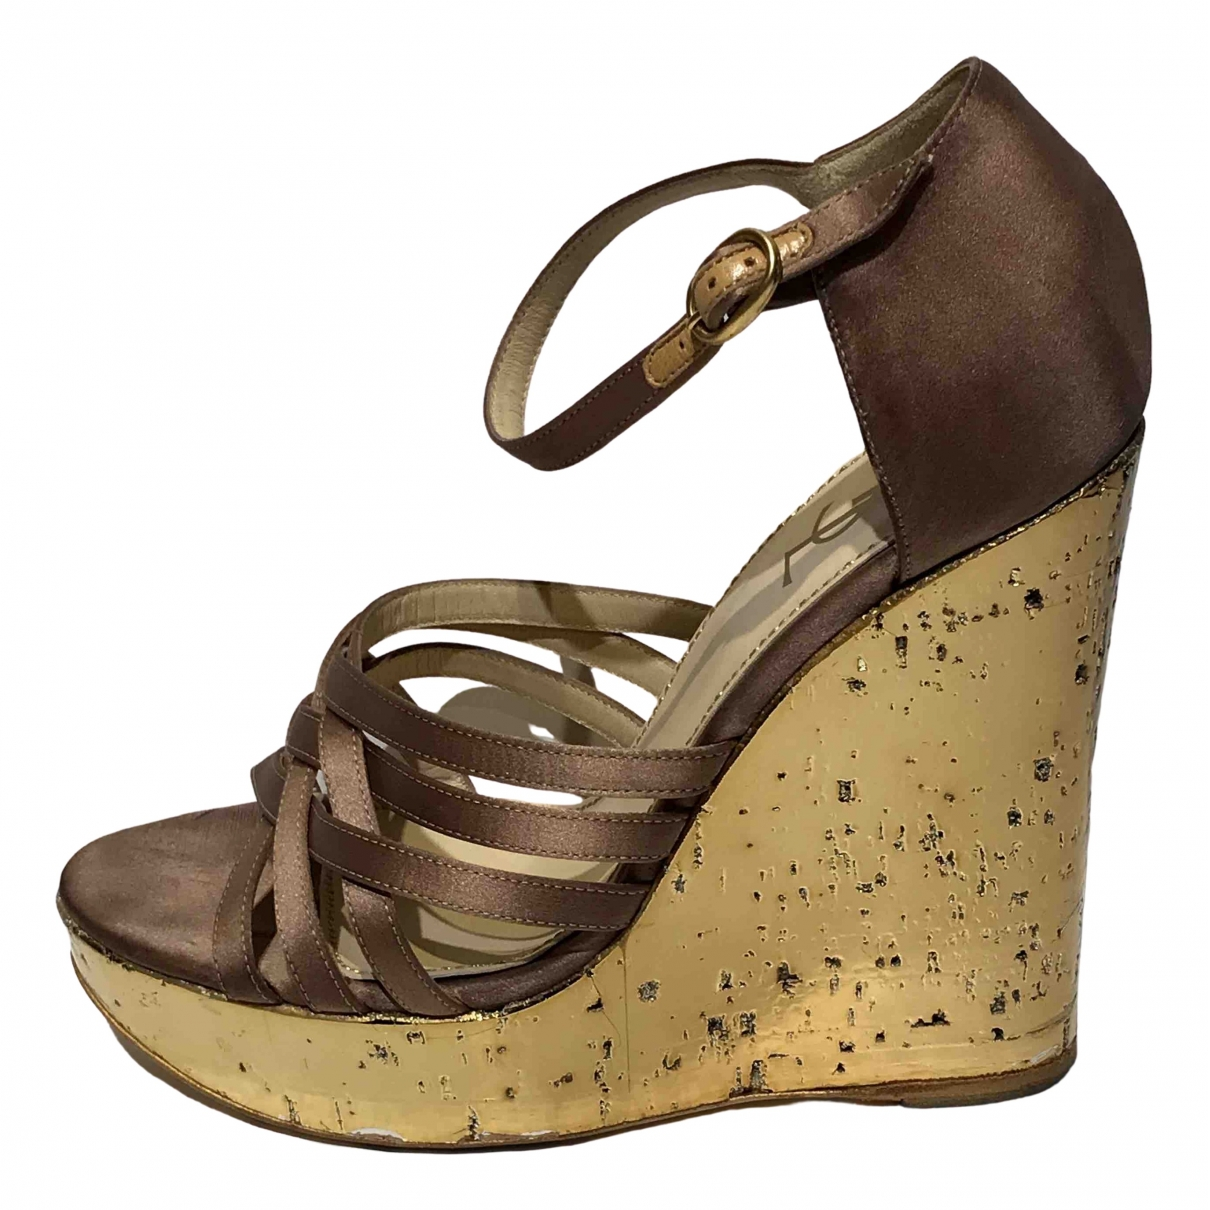 Yves Saint Laurent \N Sandalen in  Metallic Kautschuk